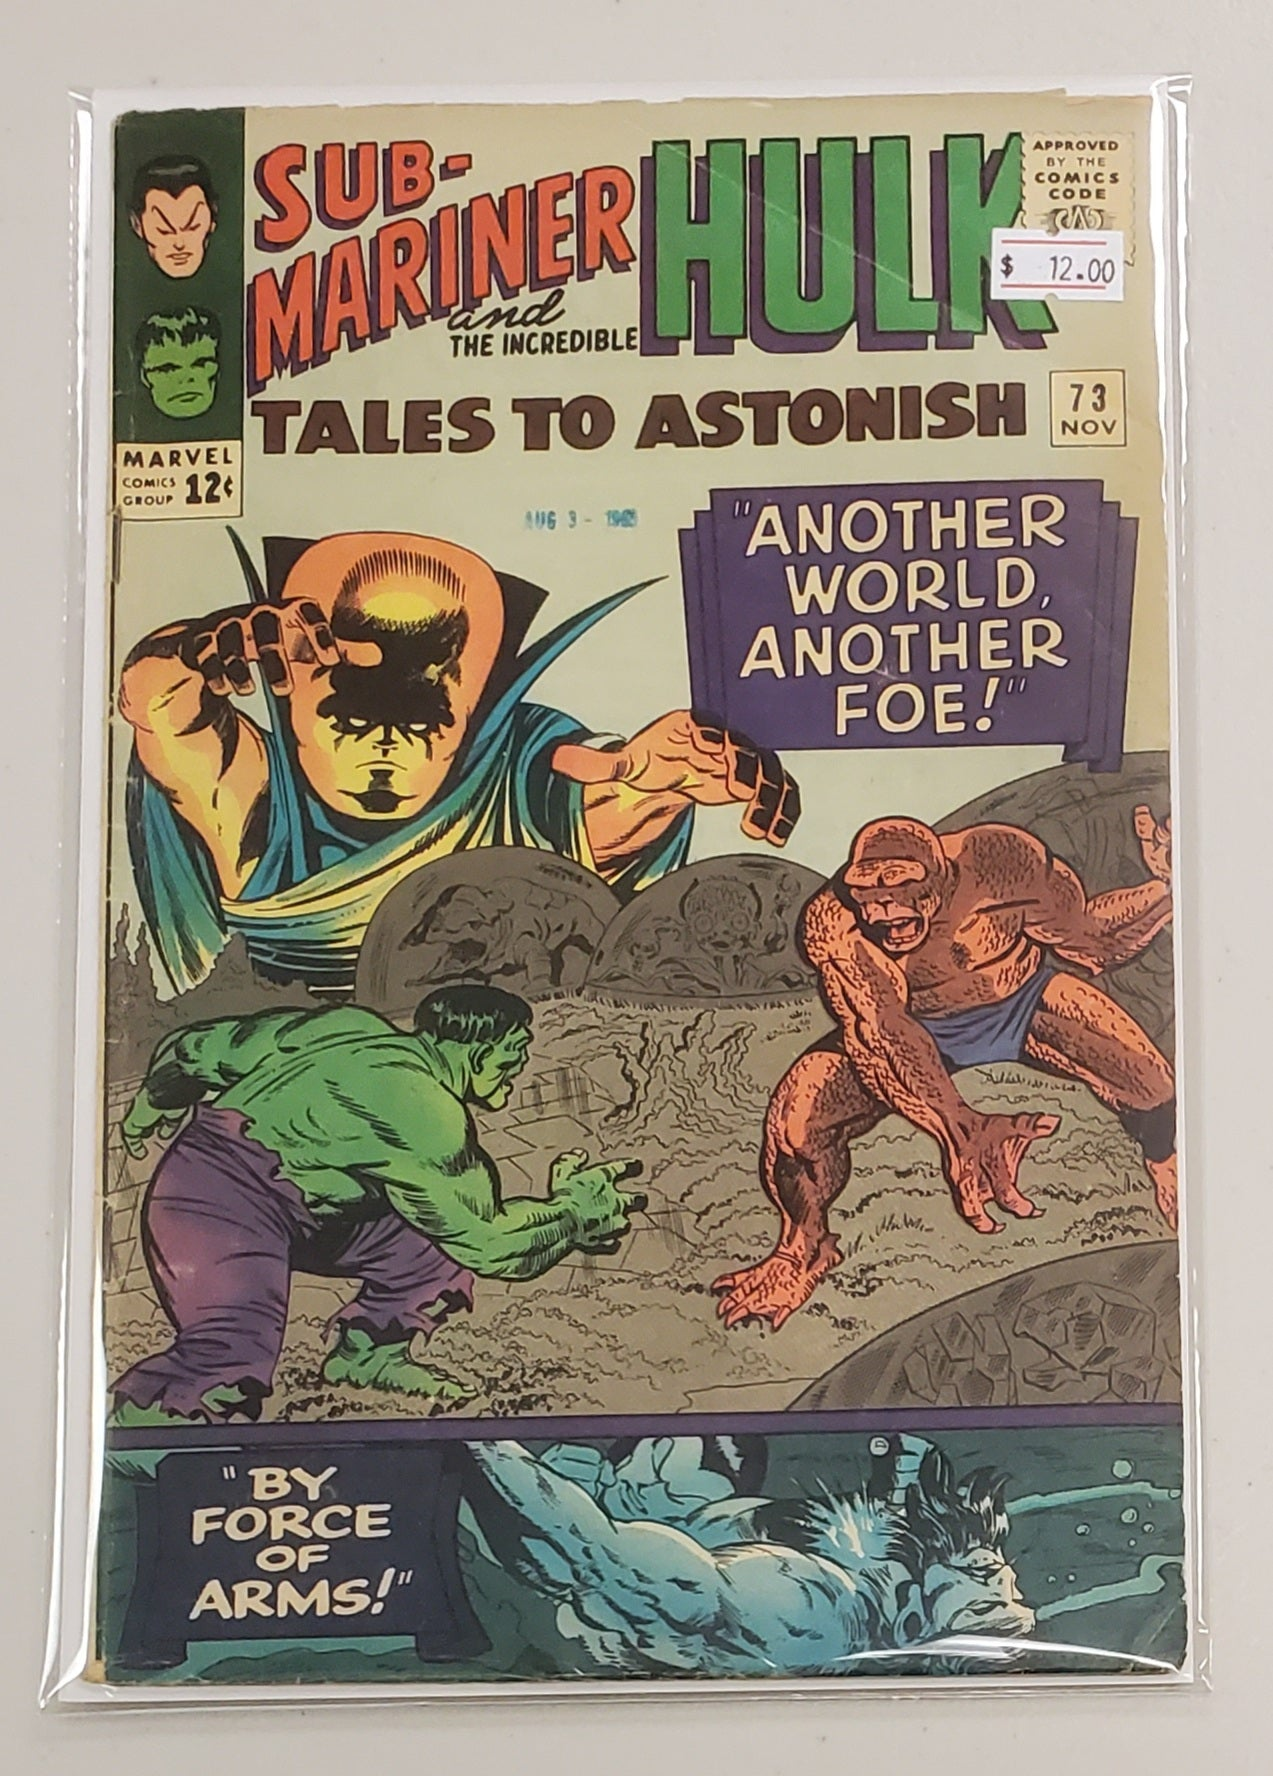 TALES TO ASTONISH #73 1965